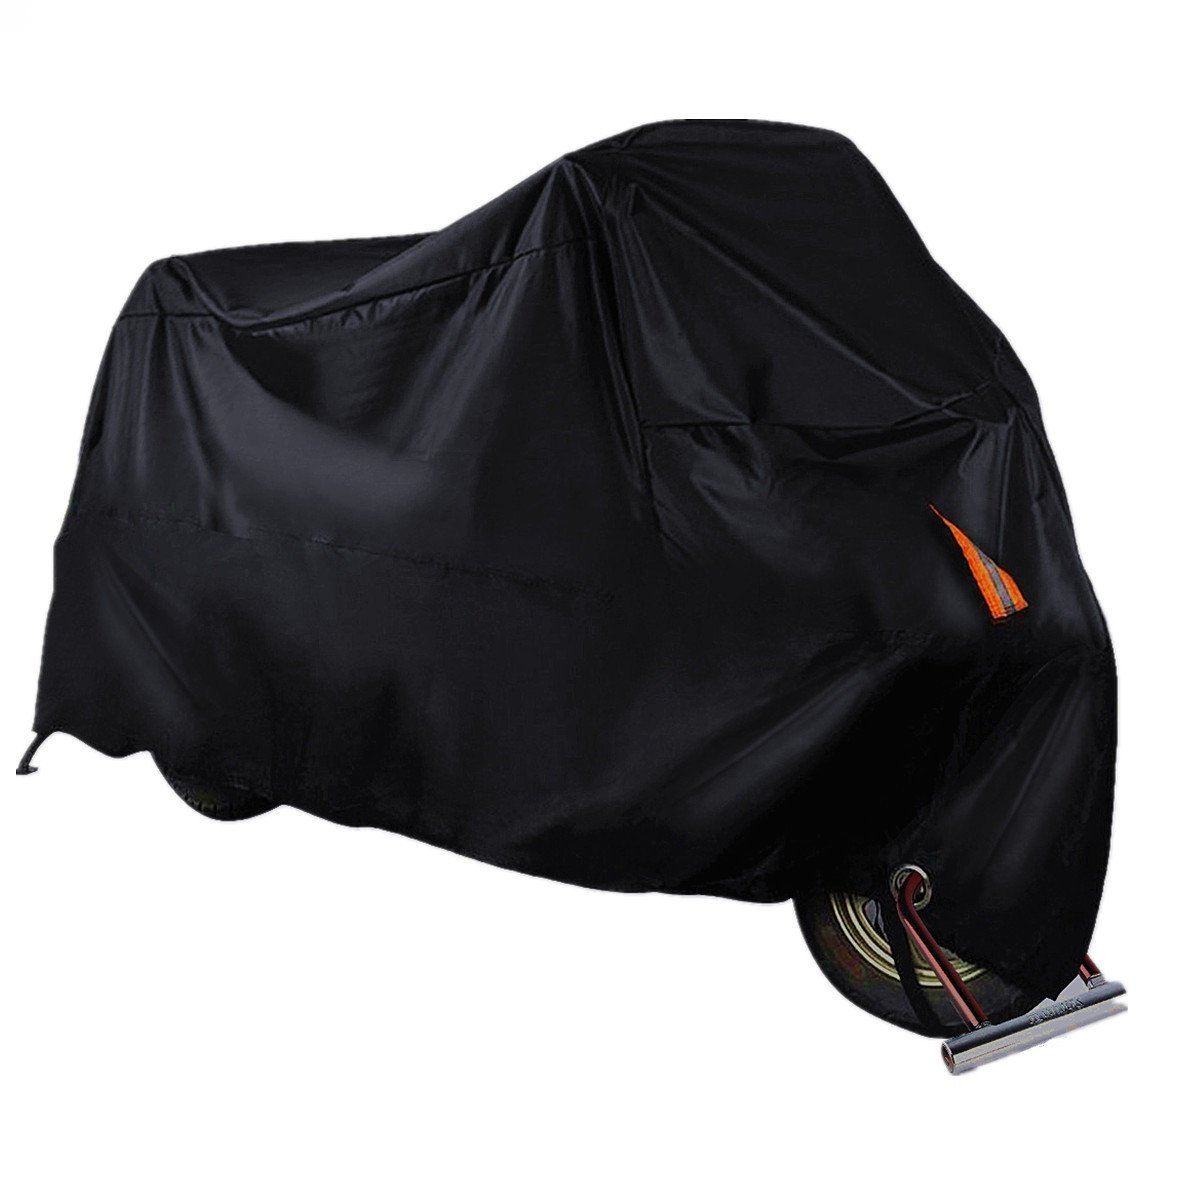 AUDEW Motorcycle Cover All Season Bike Cover Waterproof Outdoor/Indoor Protection Motorbike Cover with Lockholes Fits up to 104'' Motorcycles (XXXL)